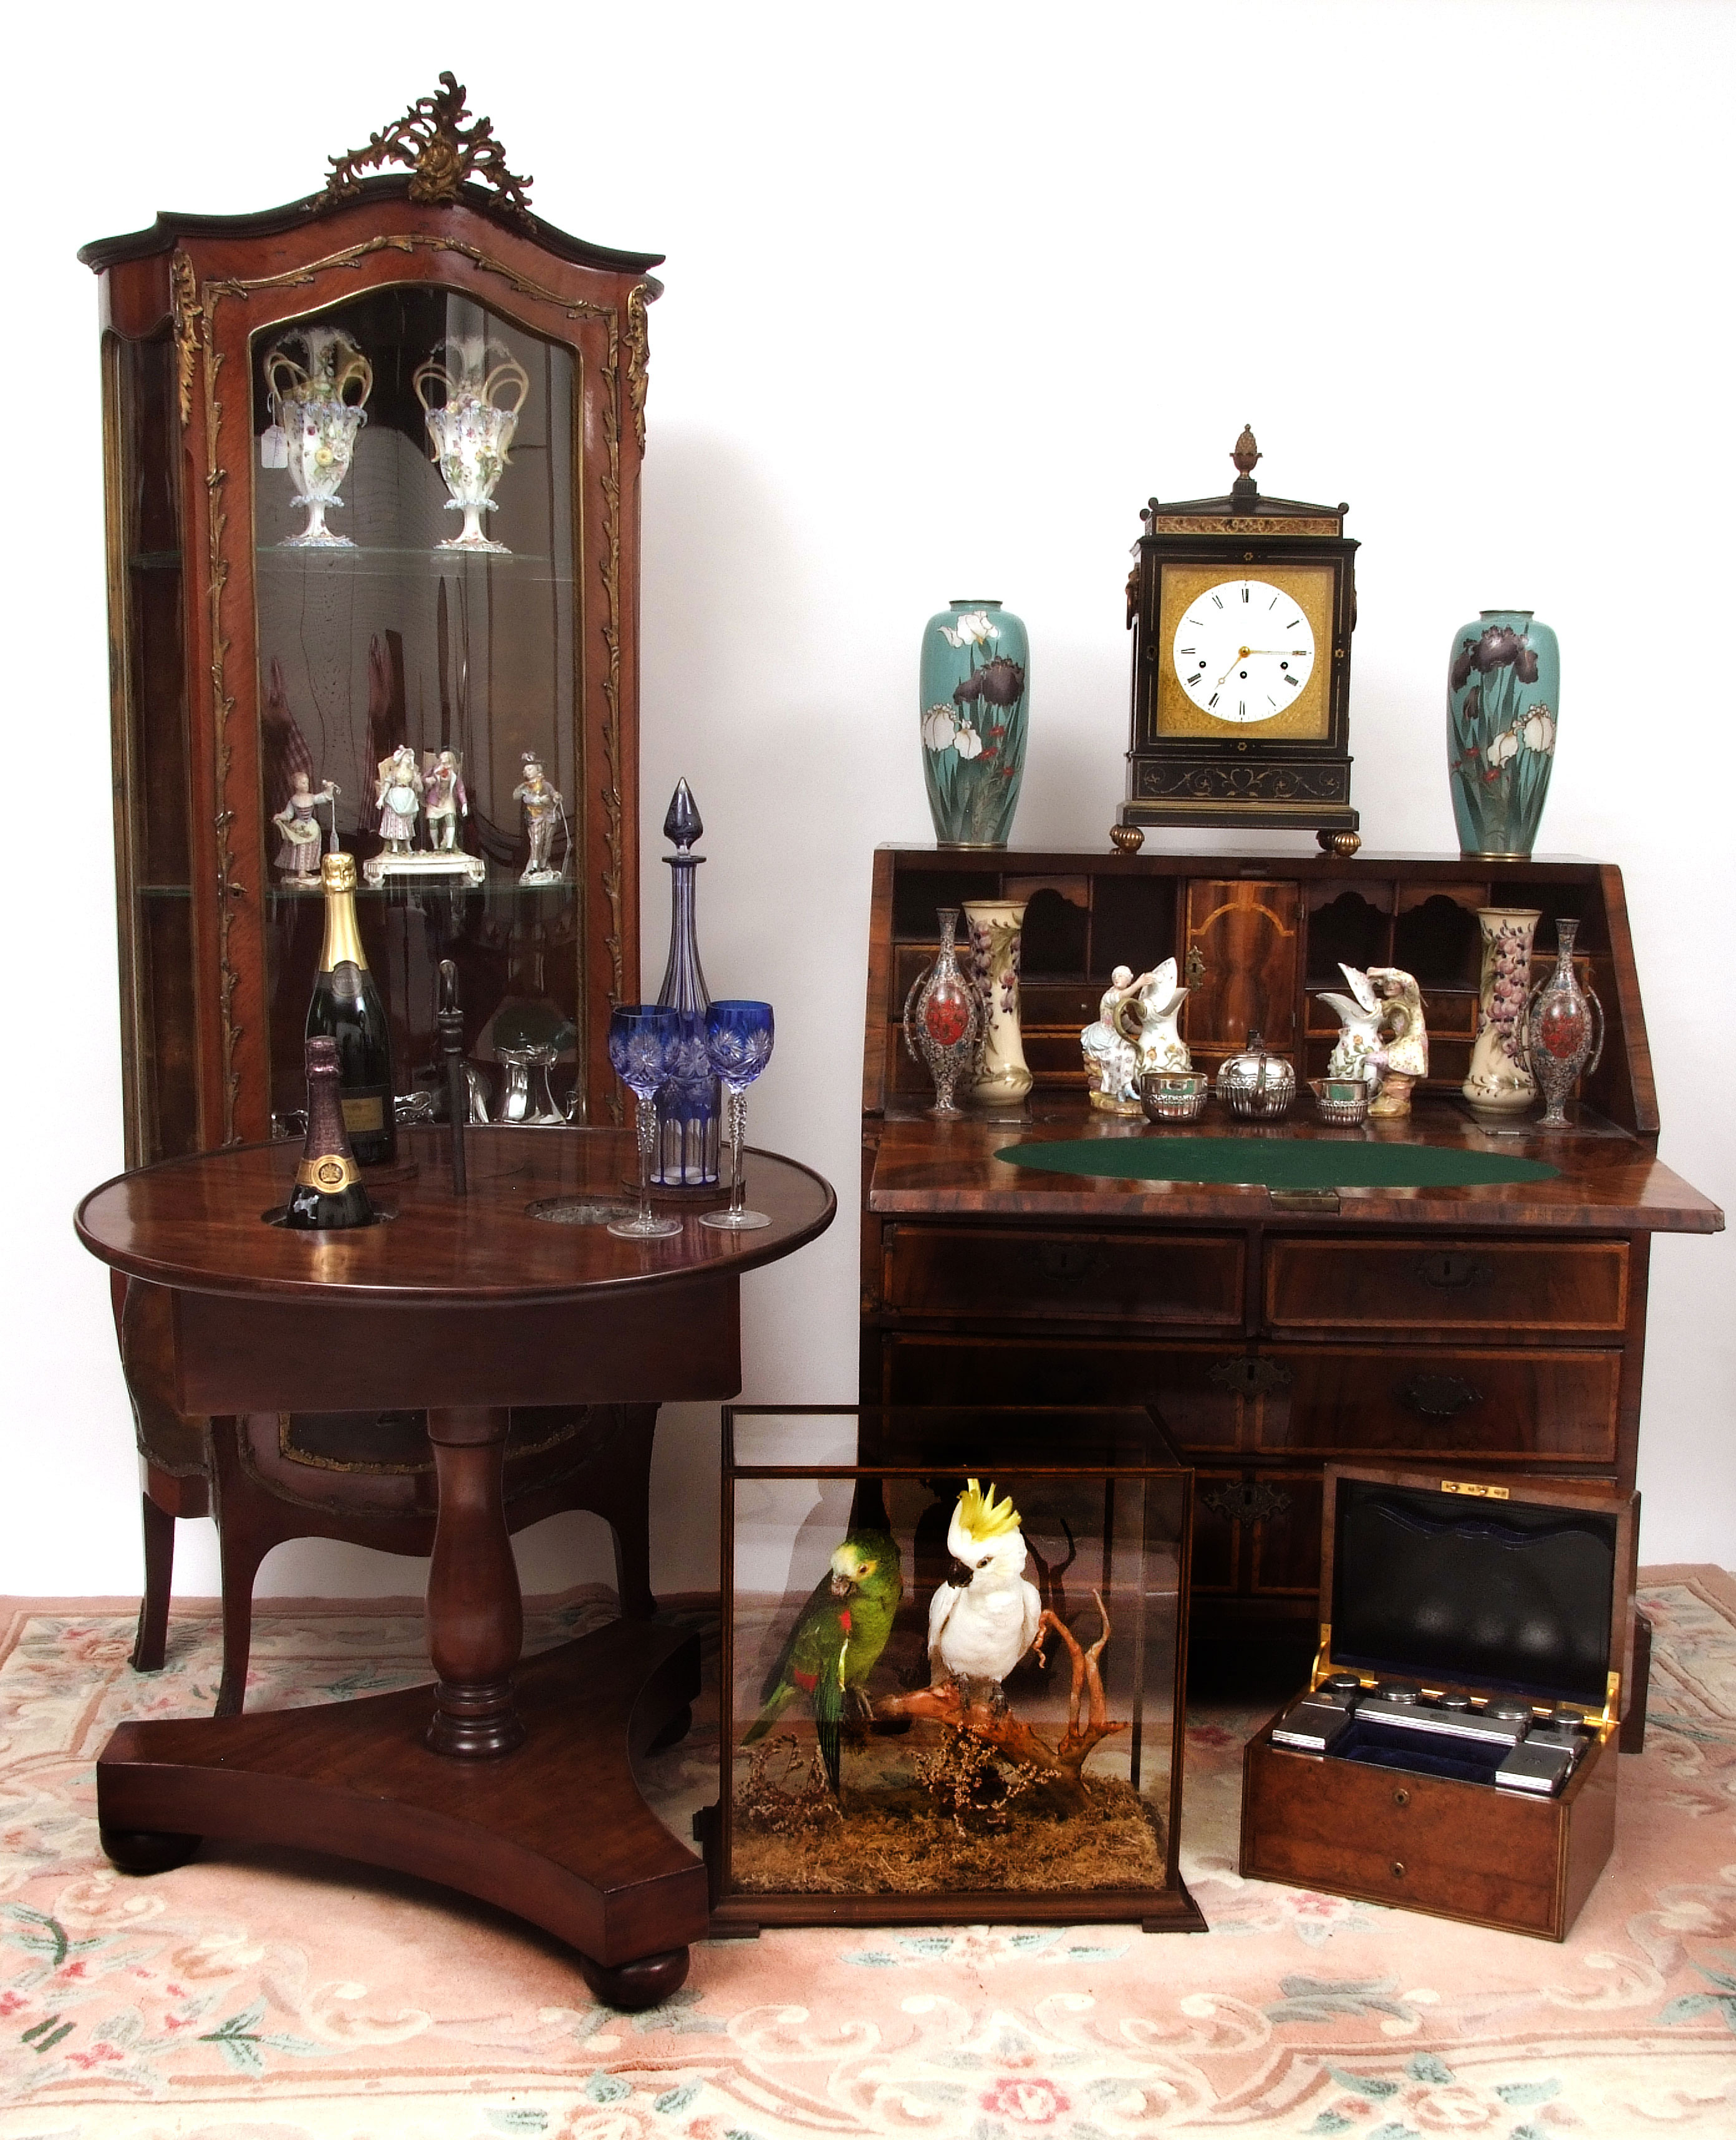 House Clearance Auctions Antique Furniture Beautiful House Clearance Service Throughout norfolk